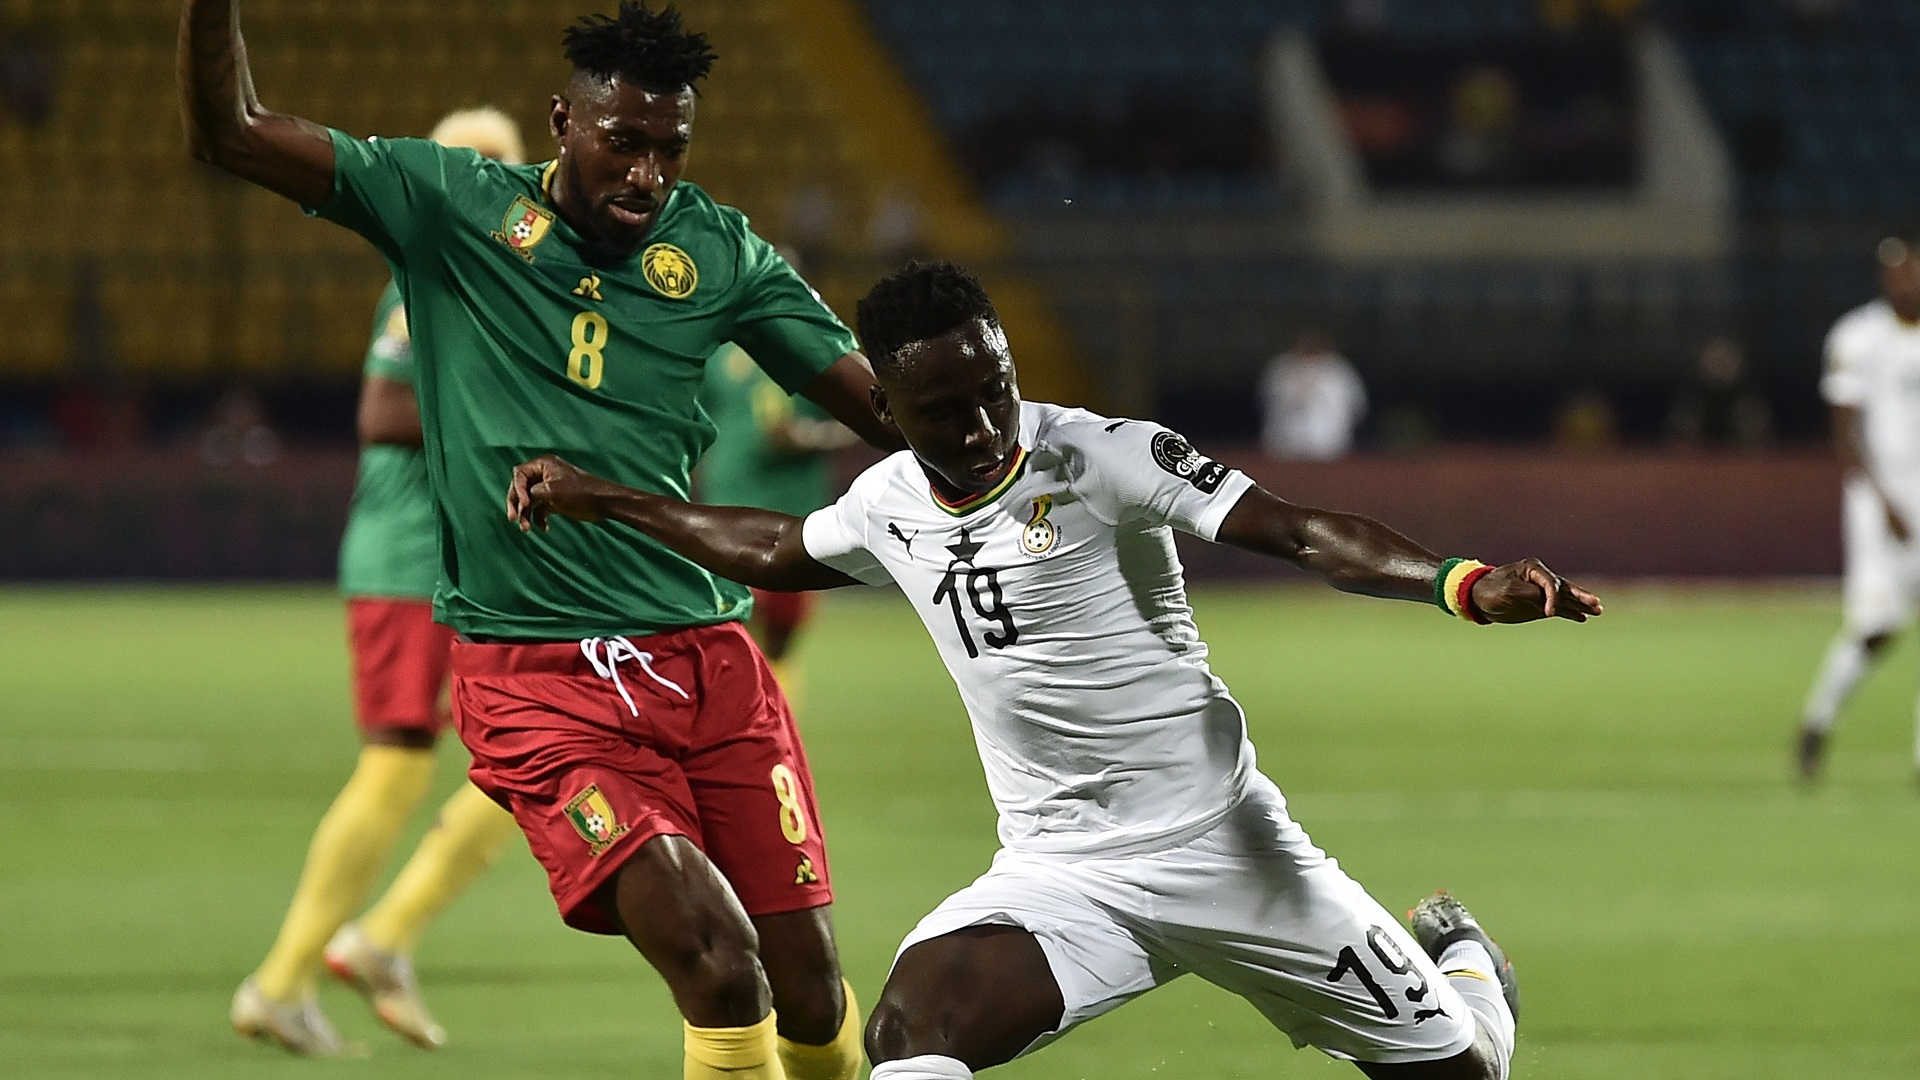 Anguissa: There is room for improvement despite Cameroon victory over 'legendary rivals' Nigeria